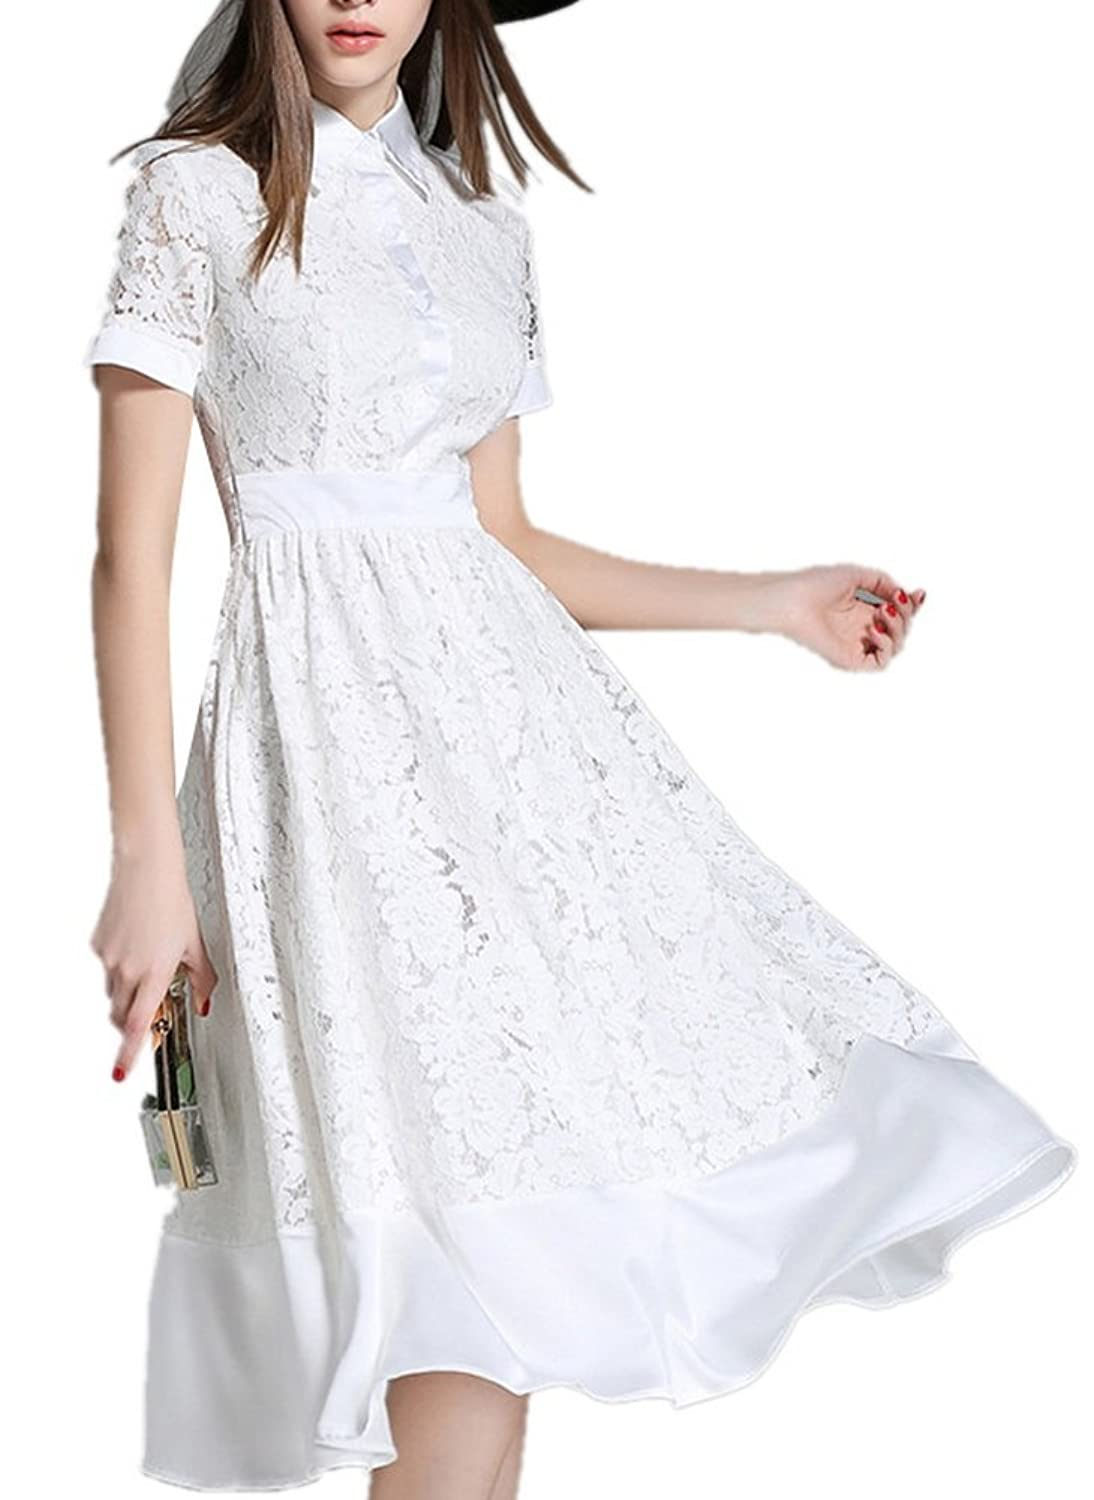 Allbebe Women's Lapel Short Sleeveless Floral Lace Tiered Party Dress